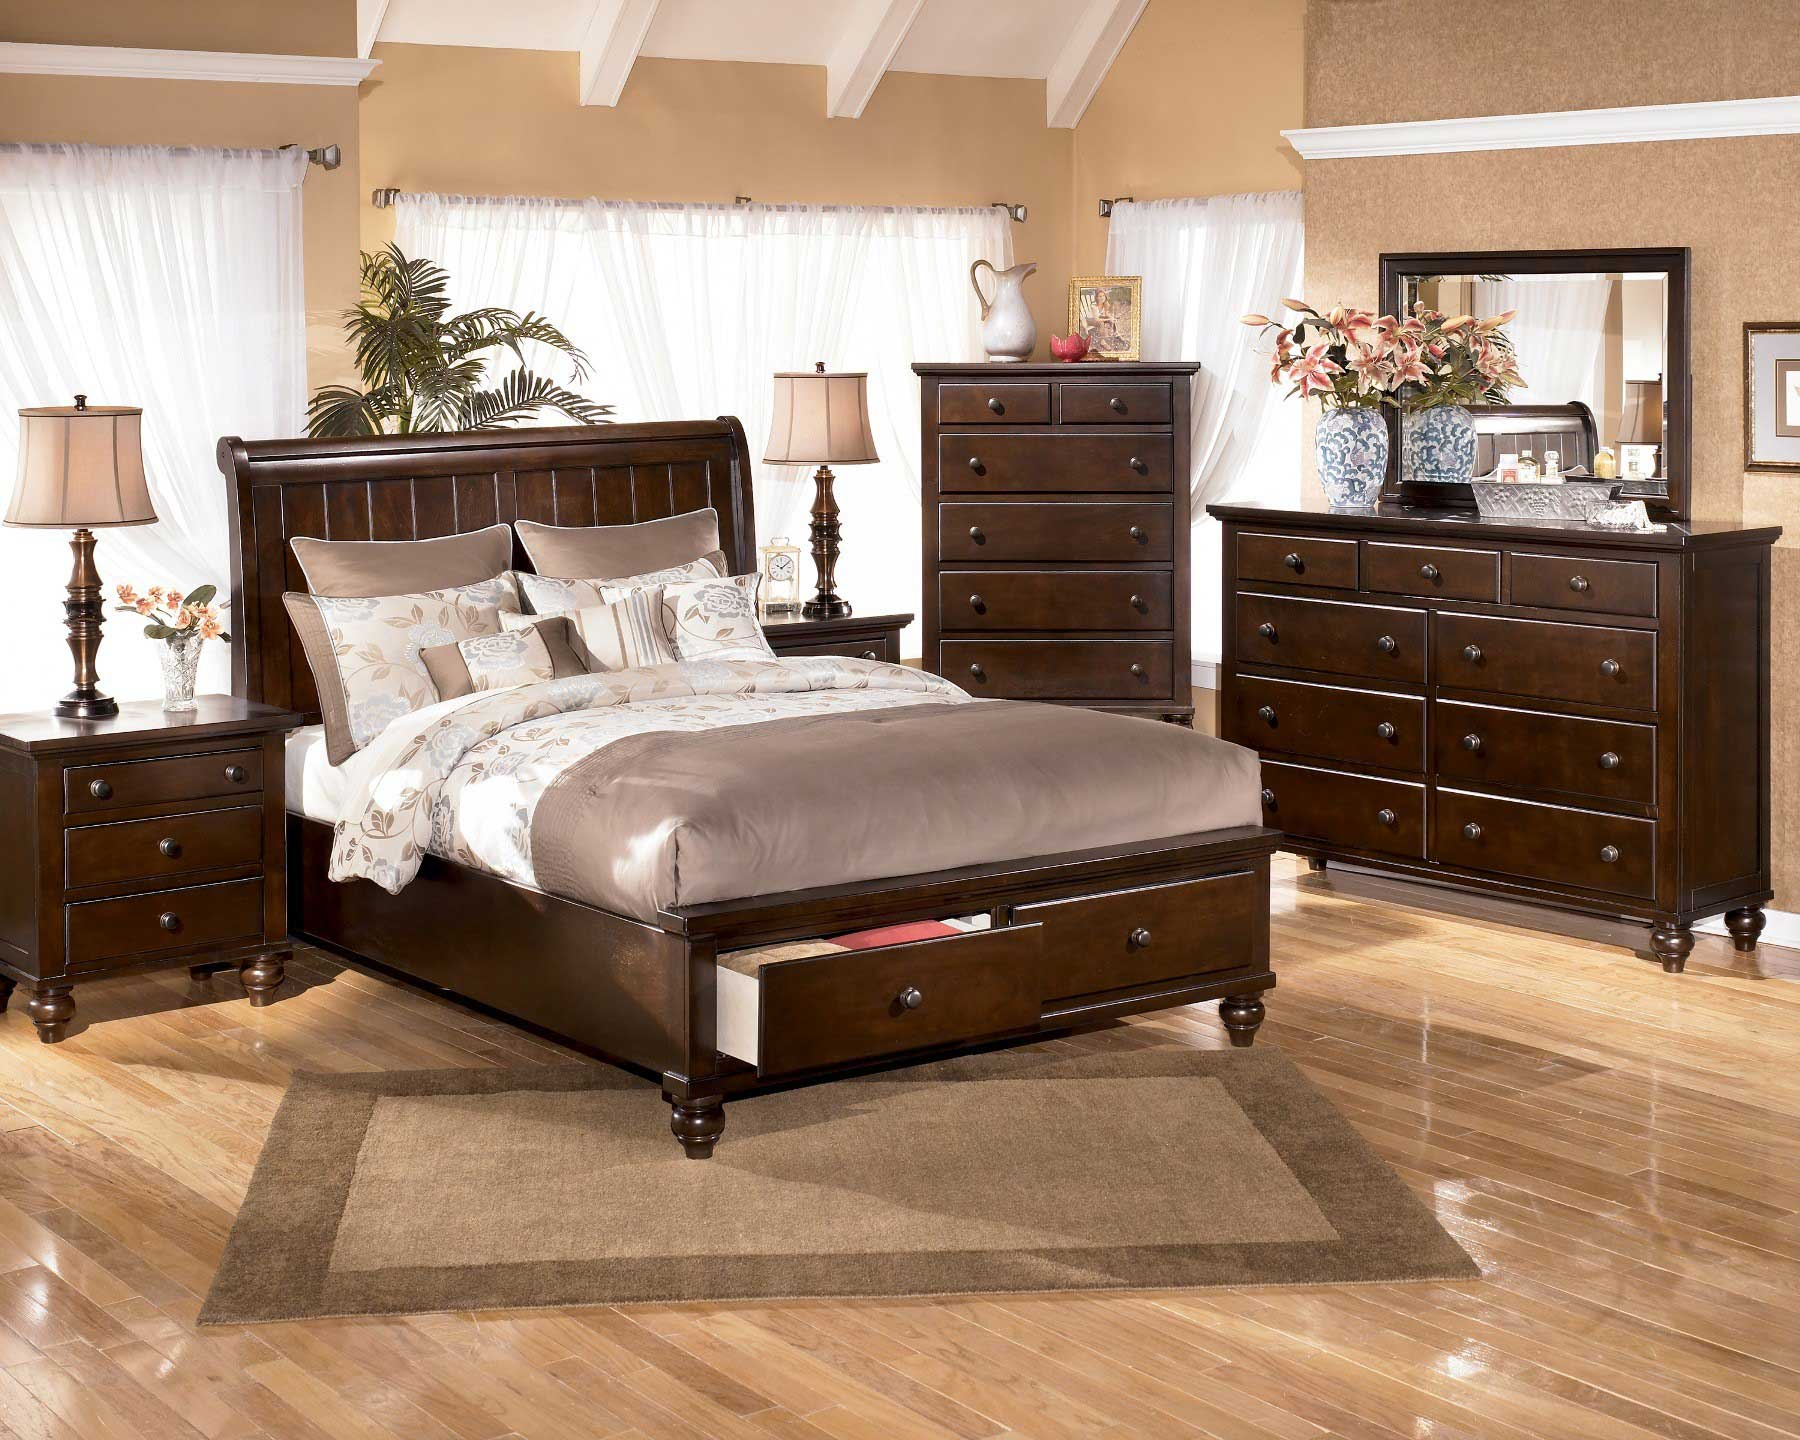 Ashley Furniture San Antonio | Ashley Furniture Louisville | Layaway Furniture